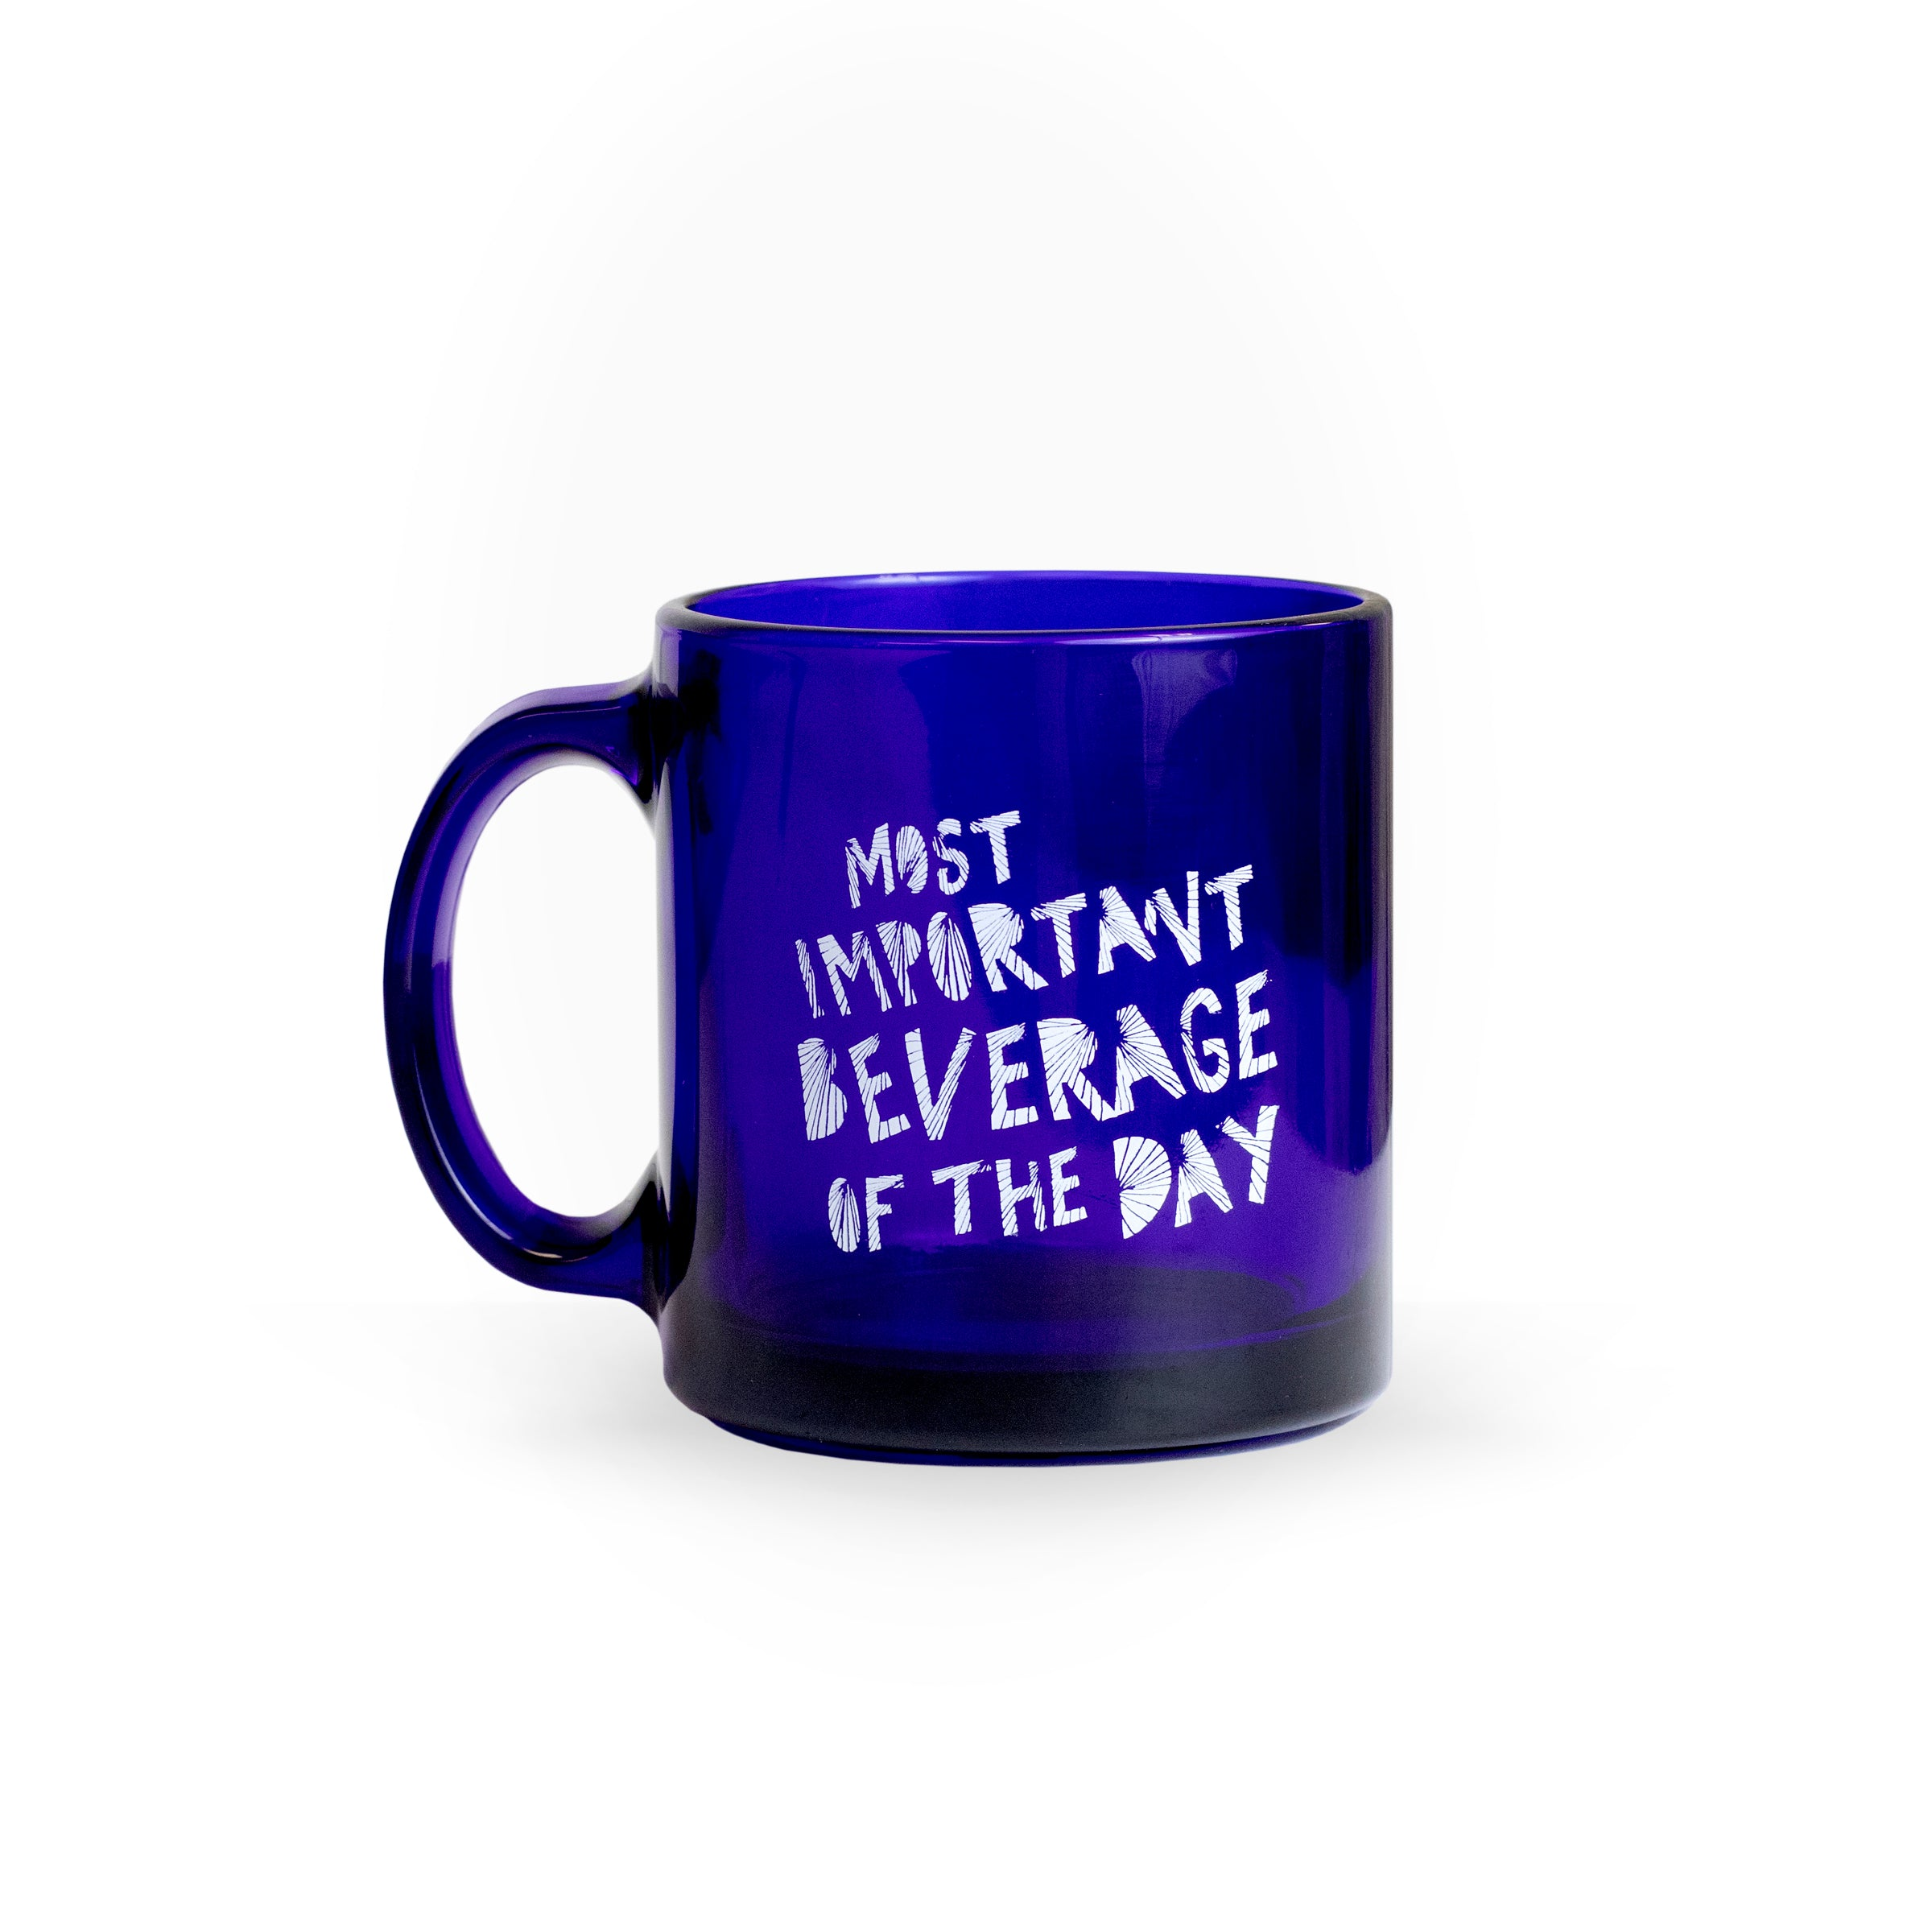 Most Important Beverage of the Day 2019 Mug